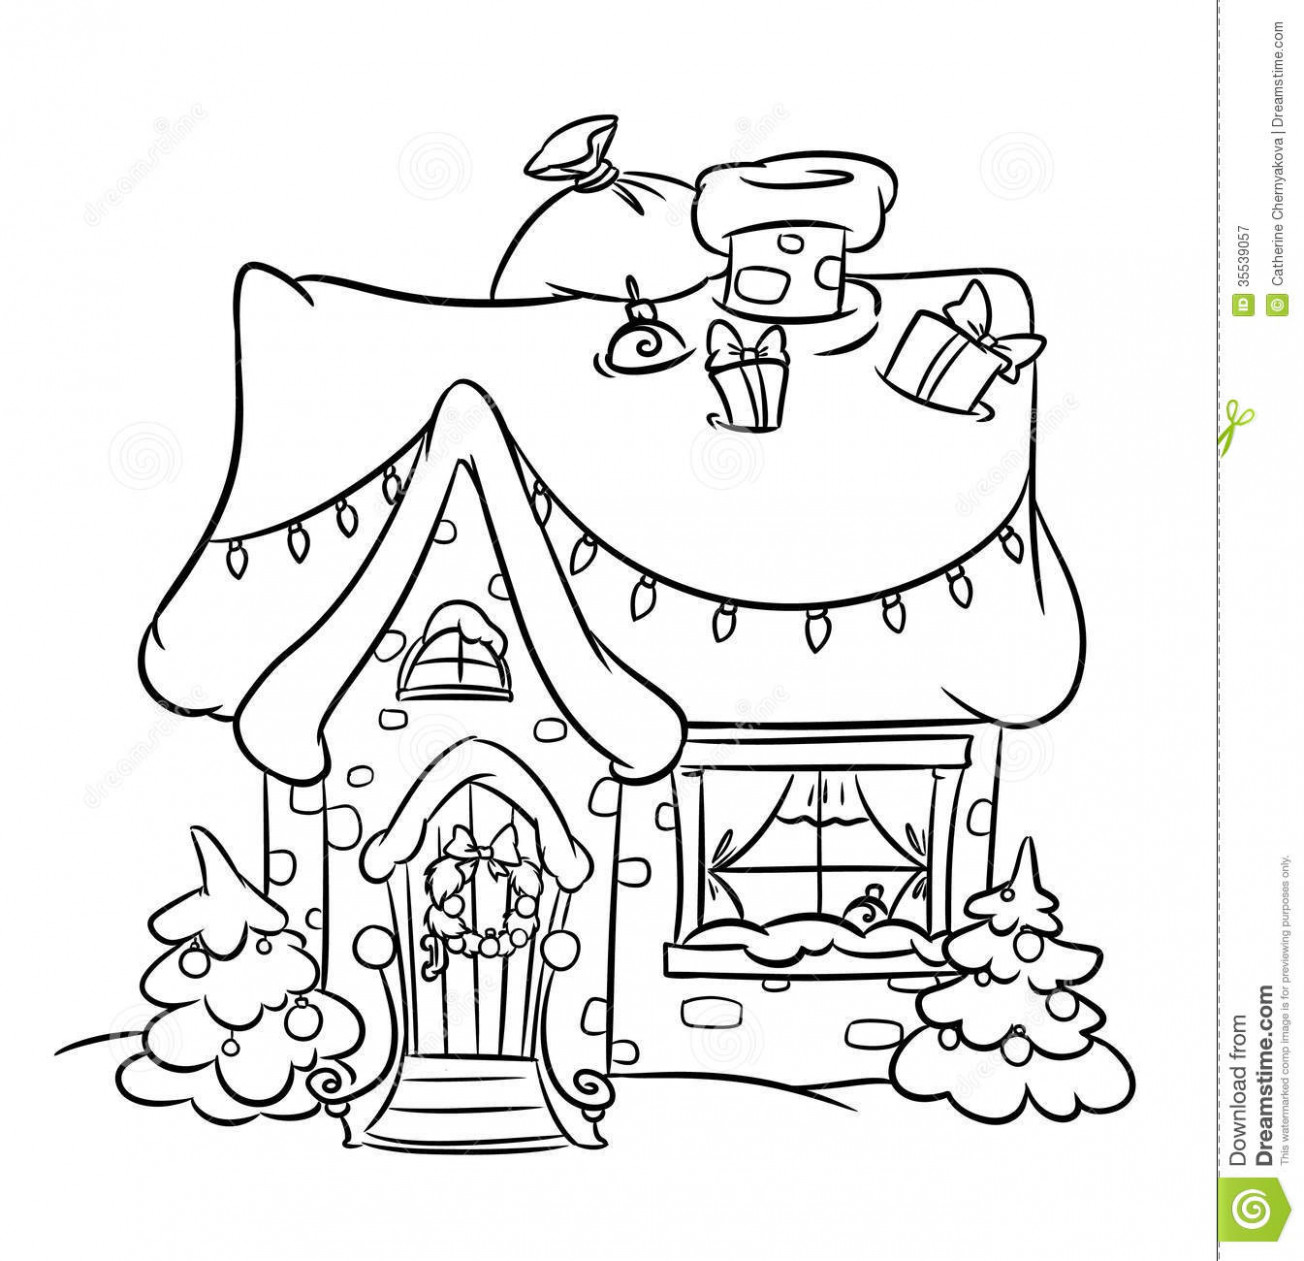 Christmas Snow House stock illustration. Illustration of decoration ..